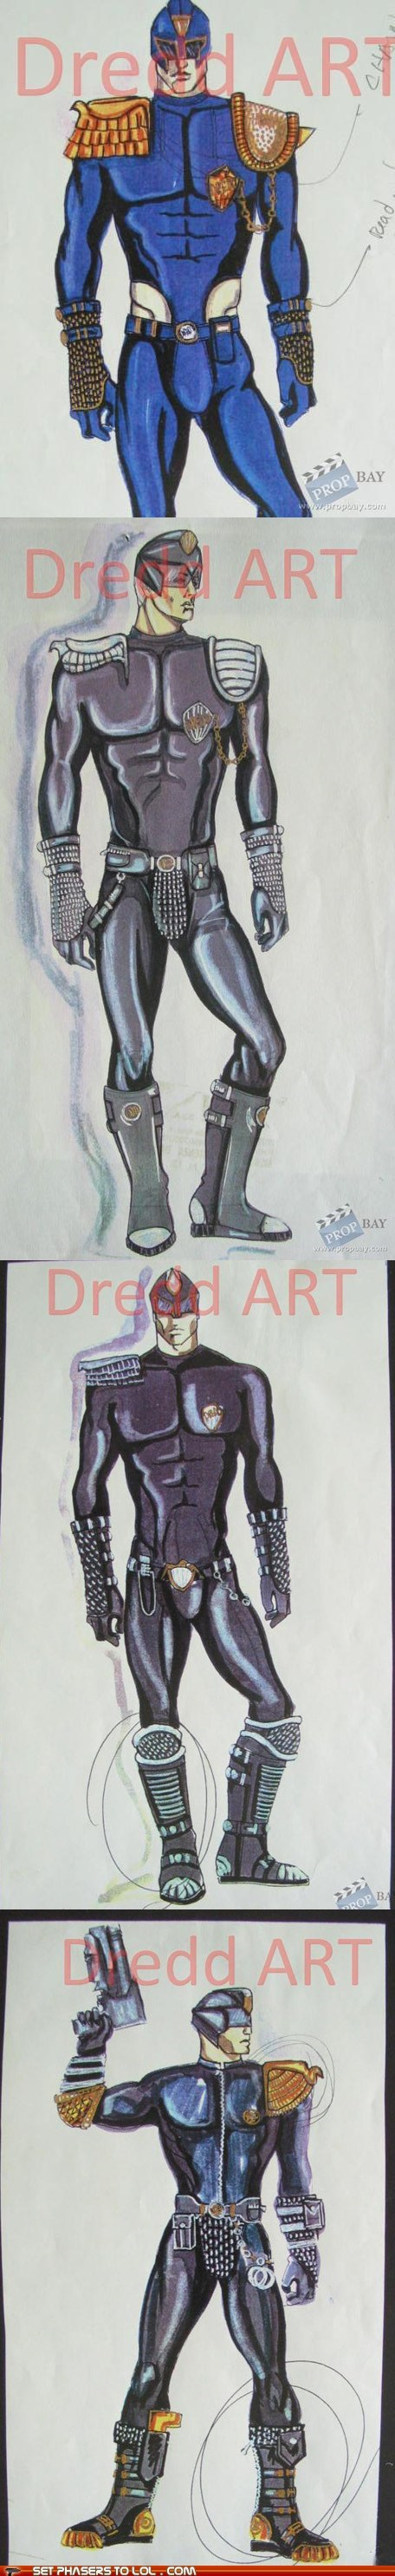 1995 concept art costume judge dredd Movie Sylvester Stalone - 6497824000